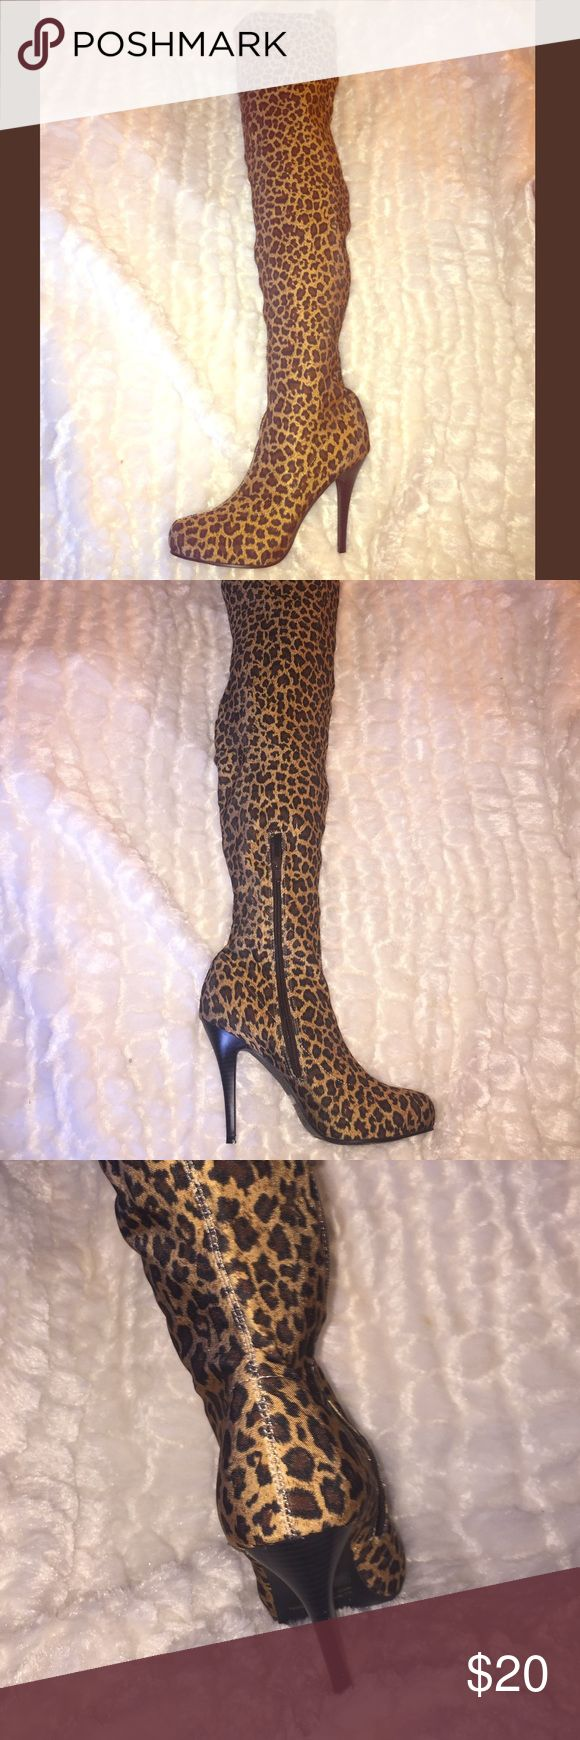 Knee High Leopard Print Boots I bought these for a Halloween costume (I wanted to Rihanna in the Rude Boy Video lol) but I never used them Shoes Heeled Boots